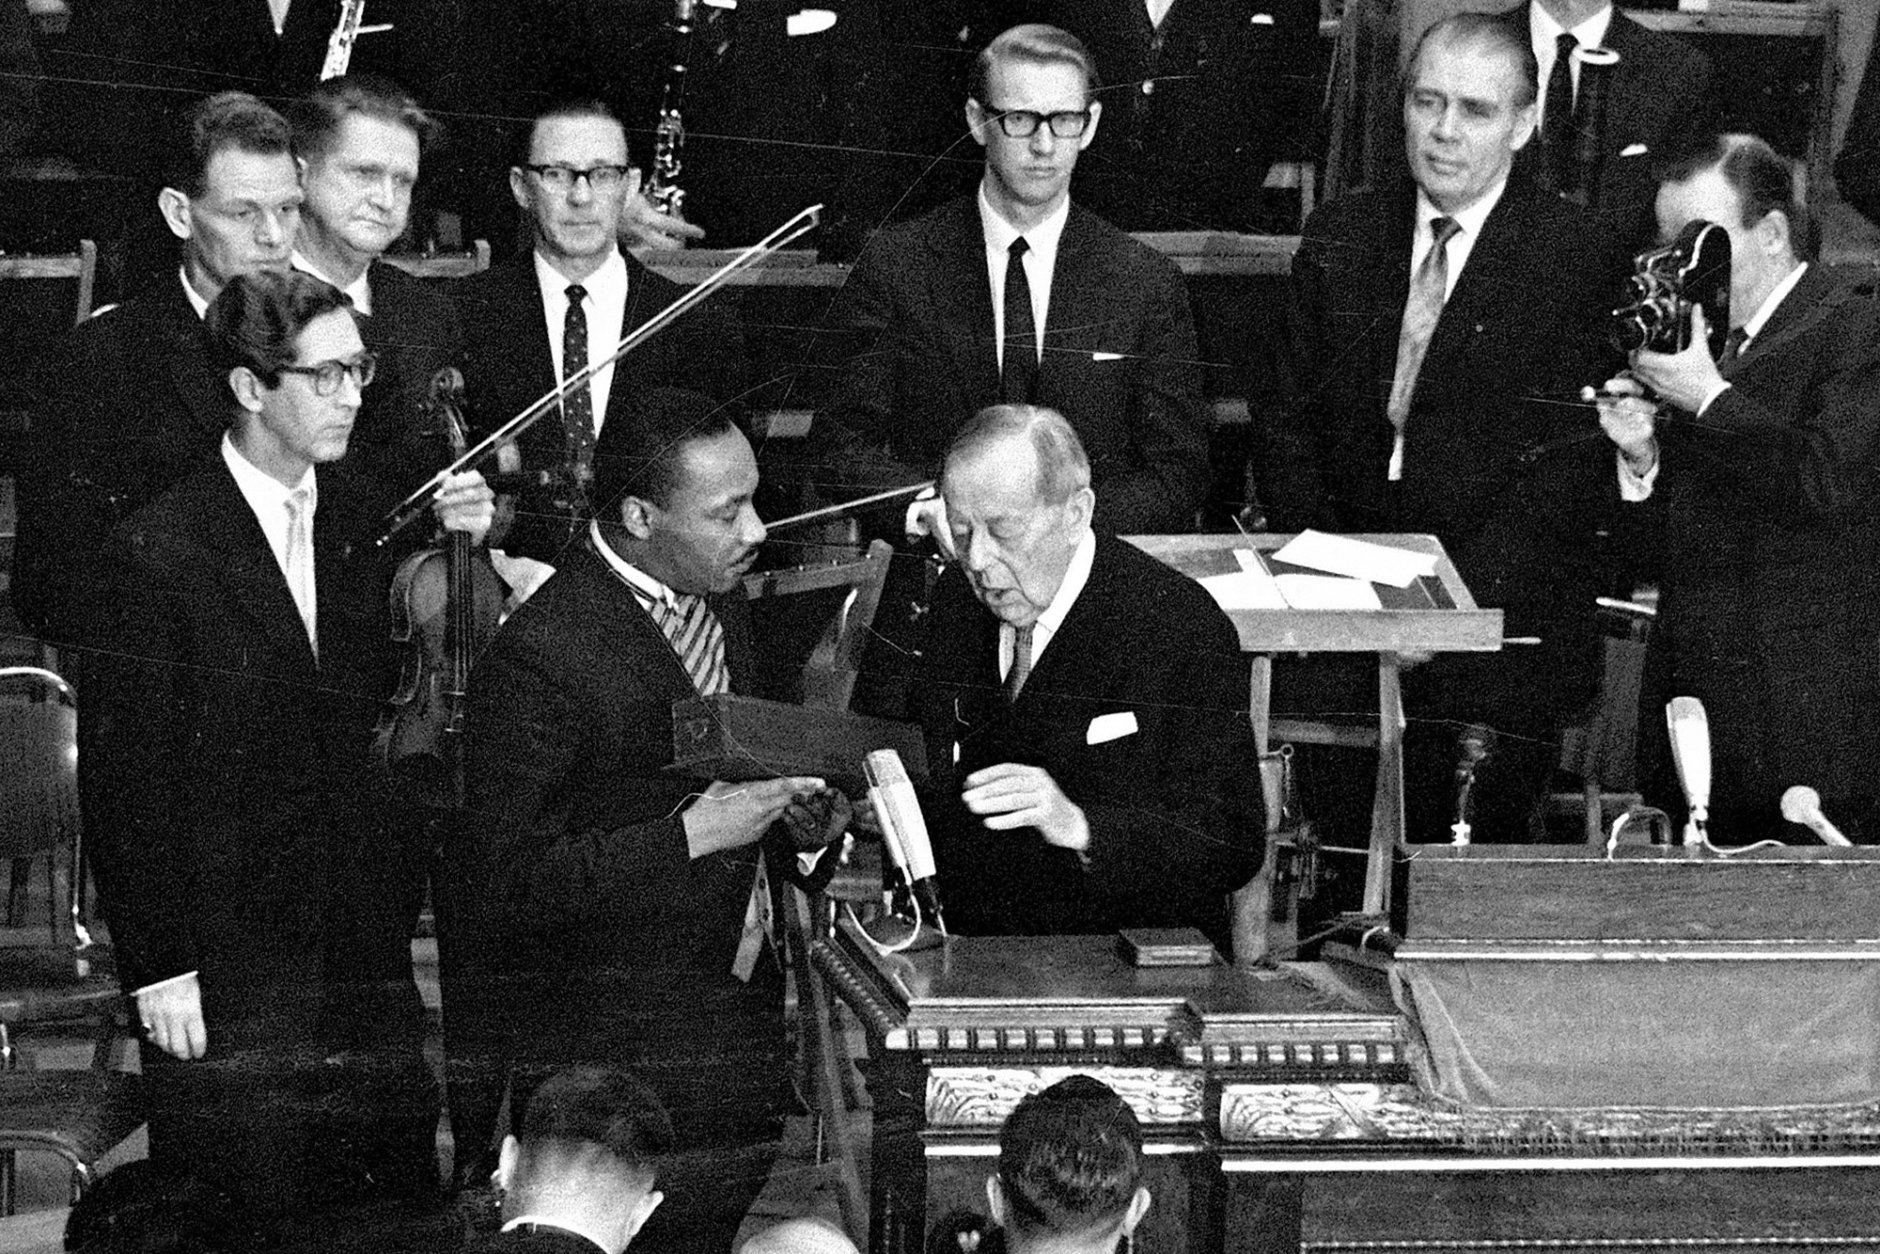 FILE - In this Dec. 10, 1964 file photo, U.S. civil rights leader the Rev. Dr. Martin Luther King receives the Nobel Peace Prize from Gunnar Jahn, chairman of the Nobel Committee, in Oslo, Norway. (AP Photo, File)